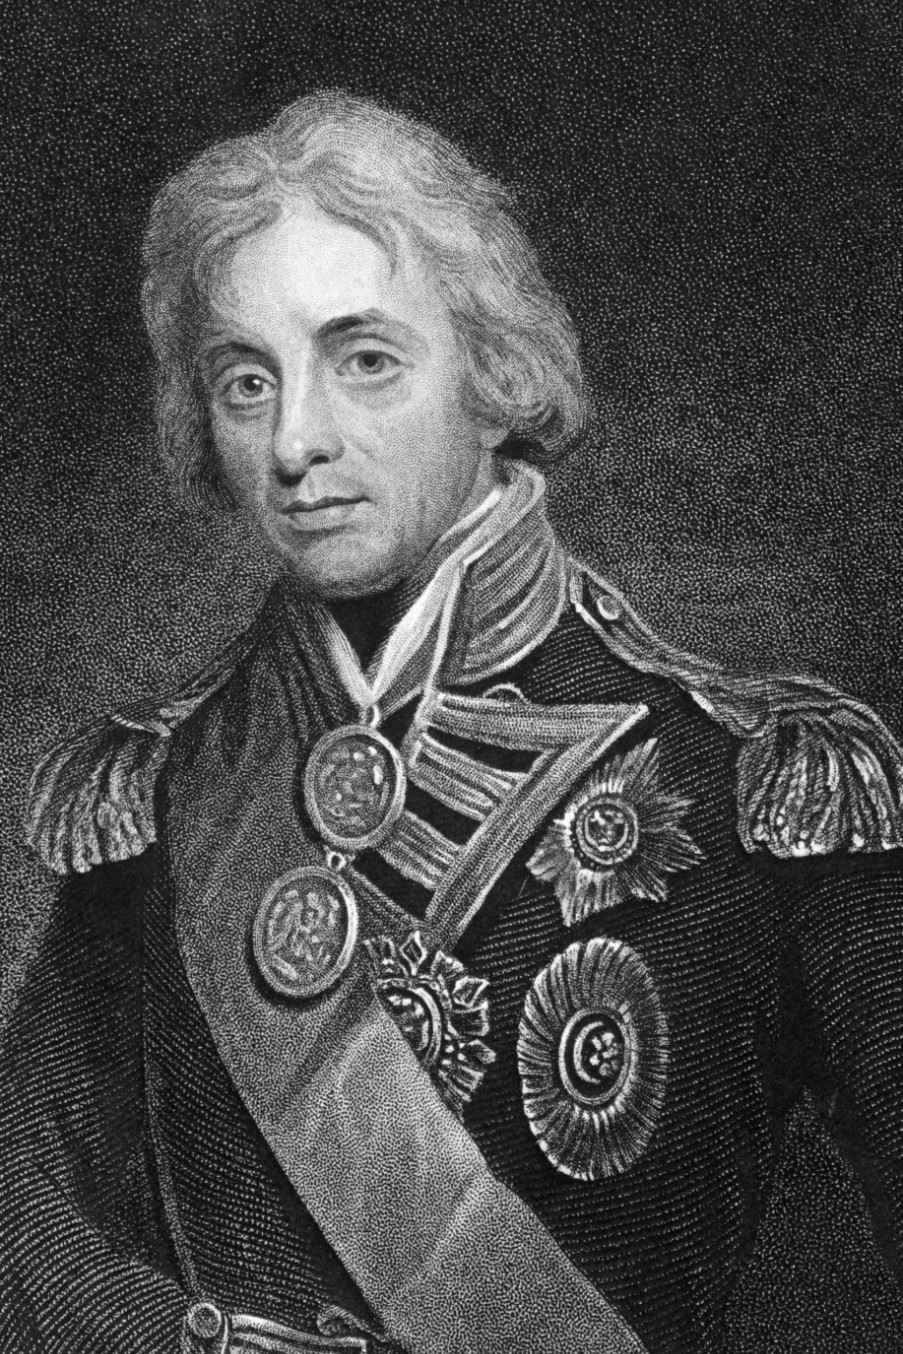 Lord Nelson, Duke of Bronte